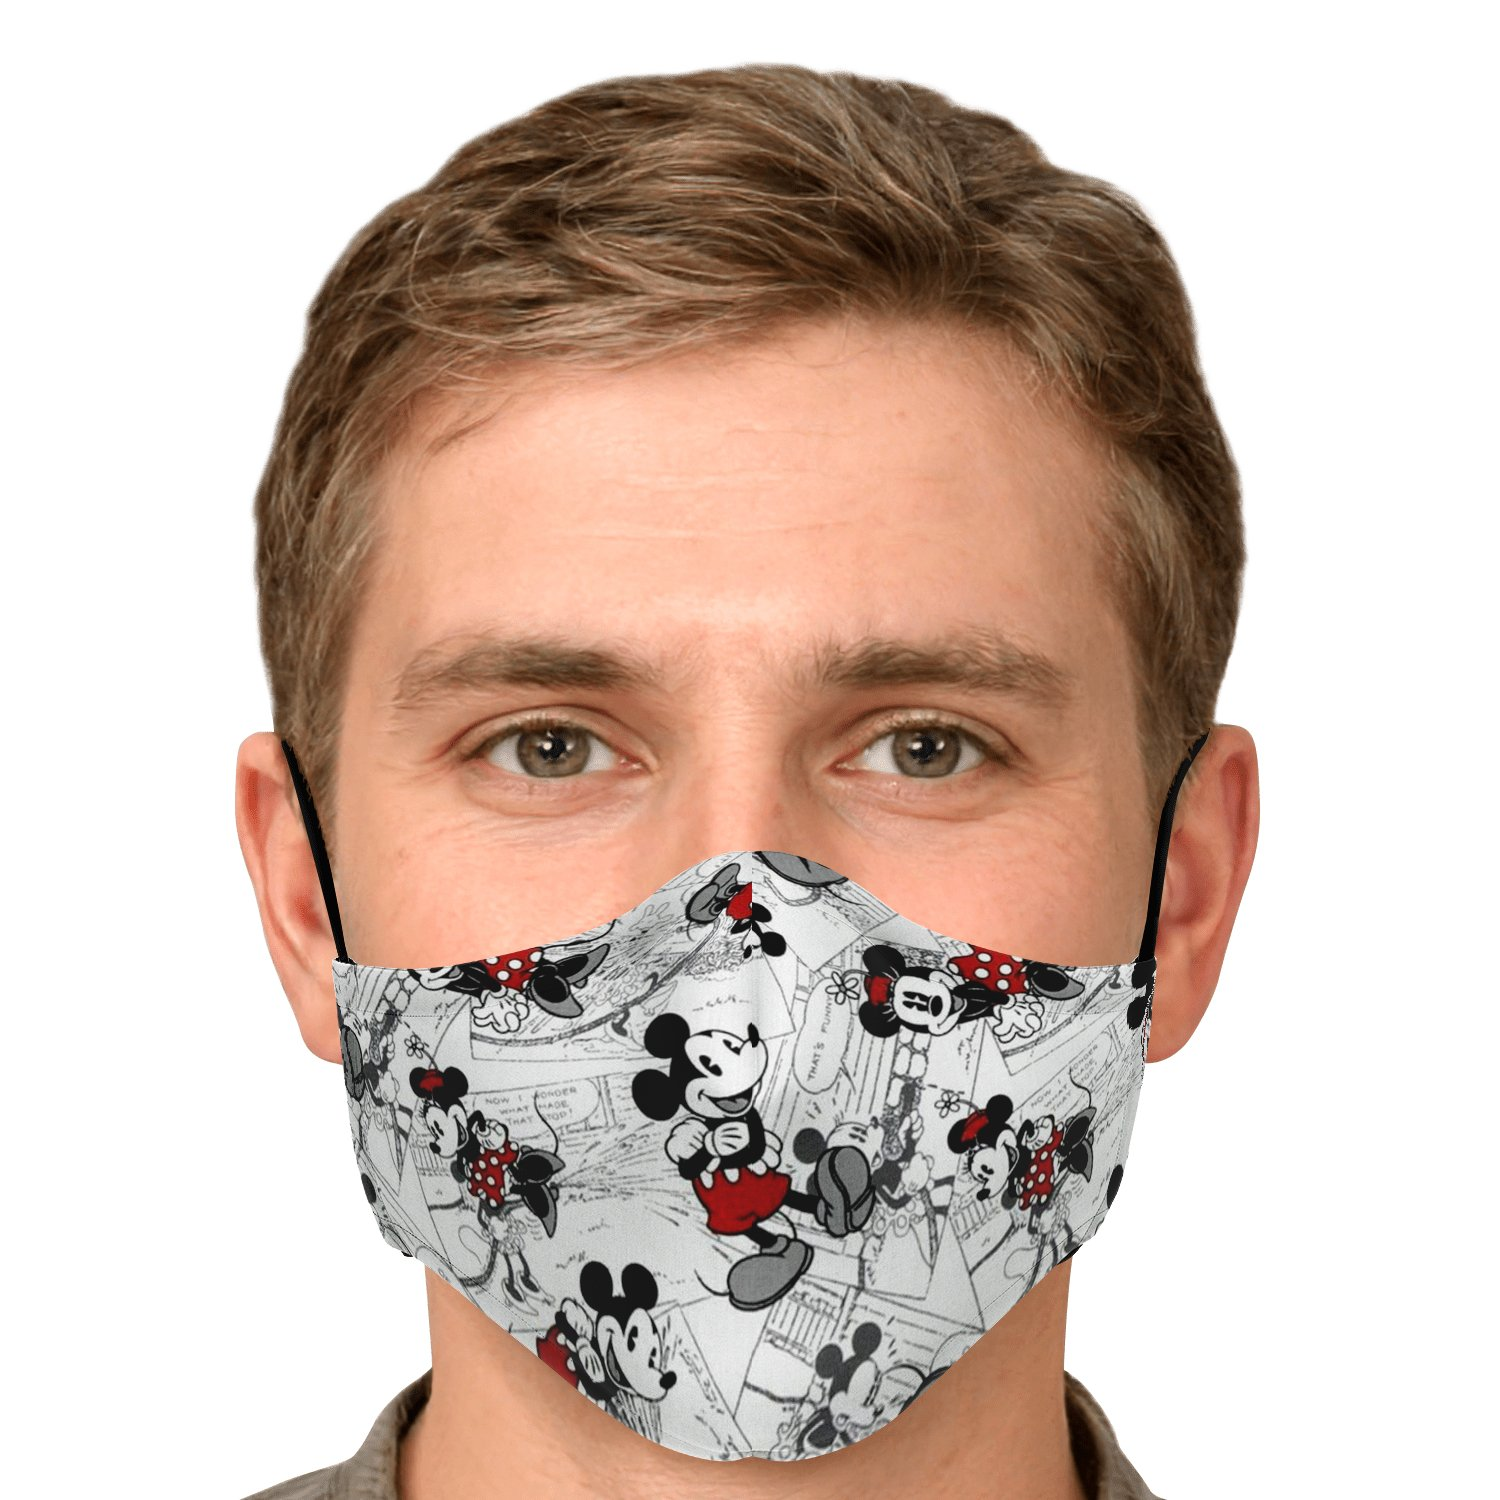 Classic Disney Mickey Mouse Face Mask 5